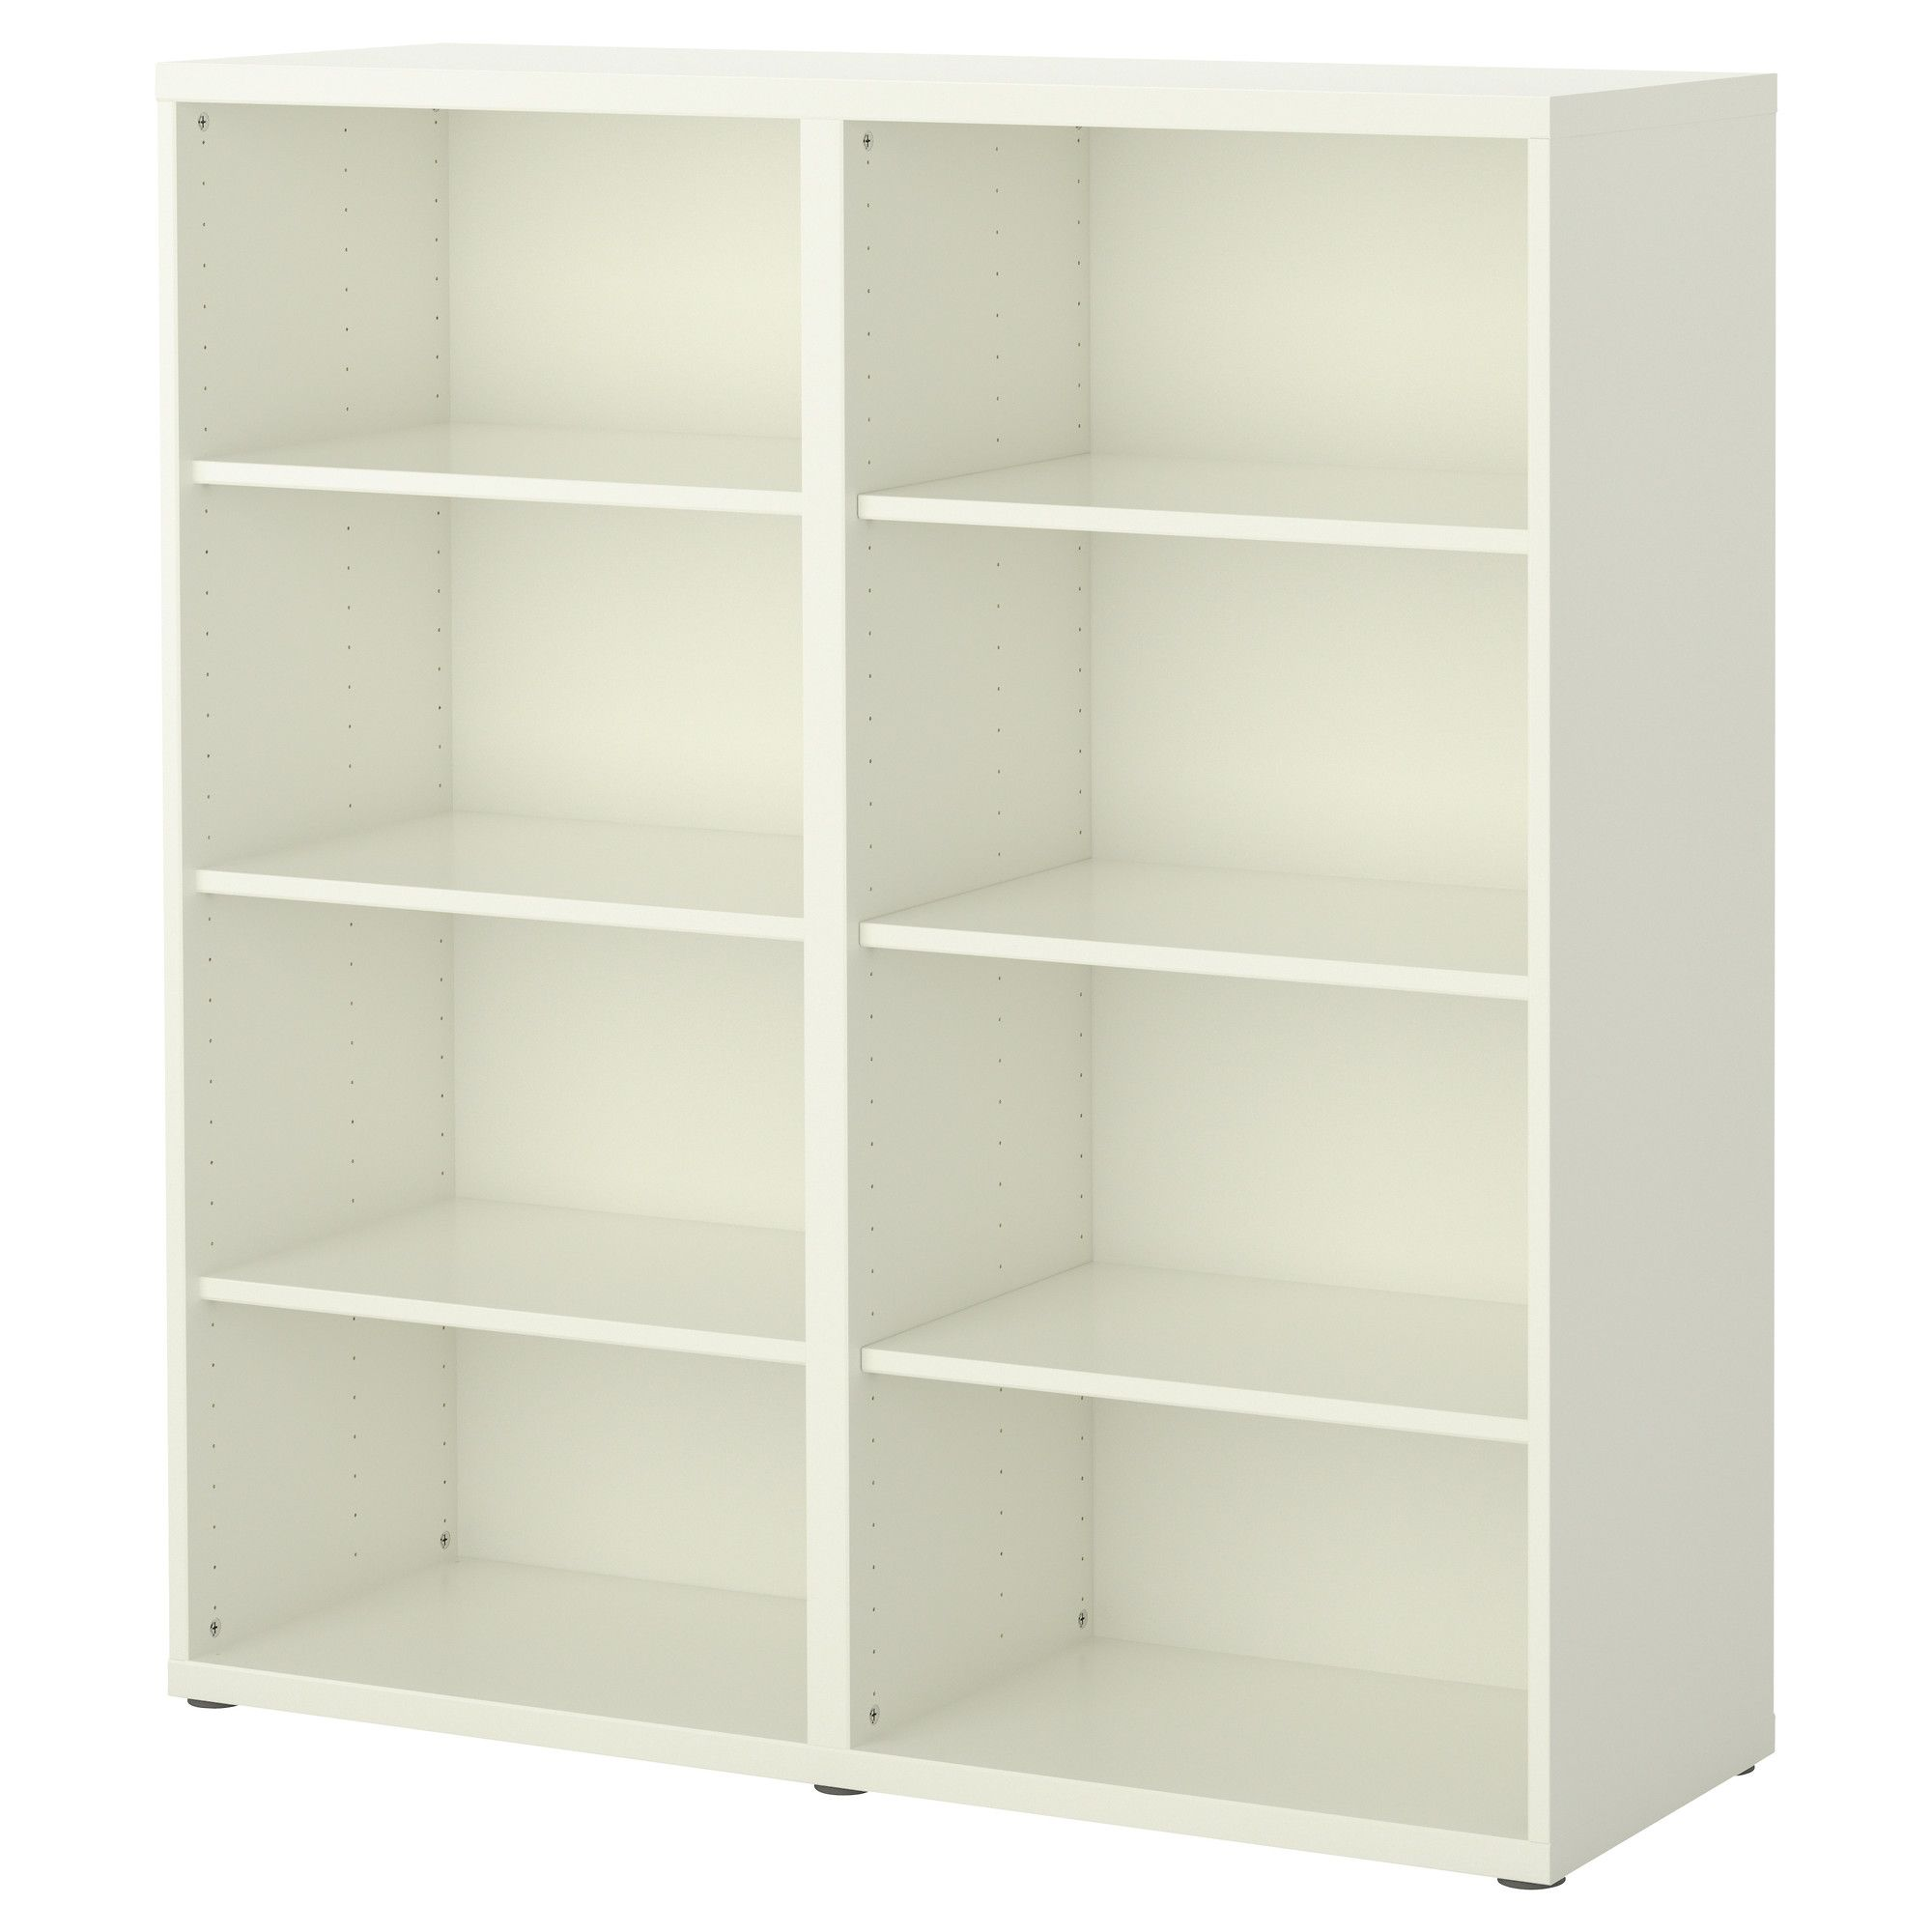 Ikea Ordnerregal BestÅ Shelf Unit White Ikea Studiosity Ikea Ikea